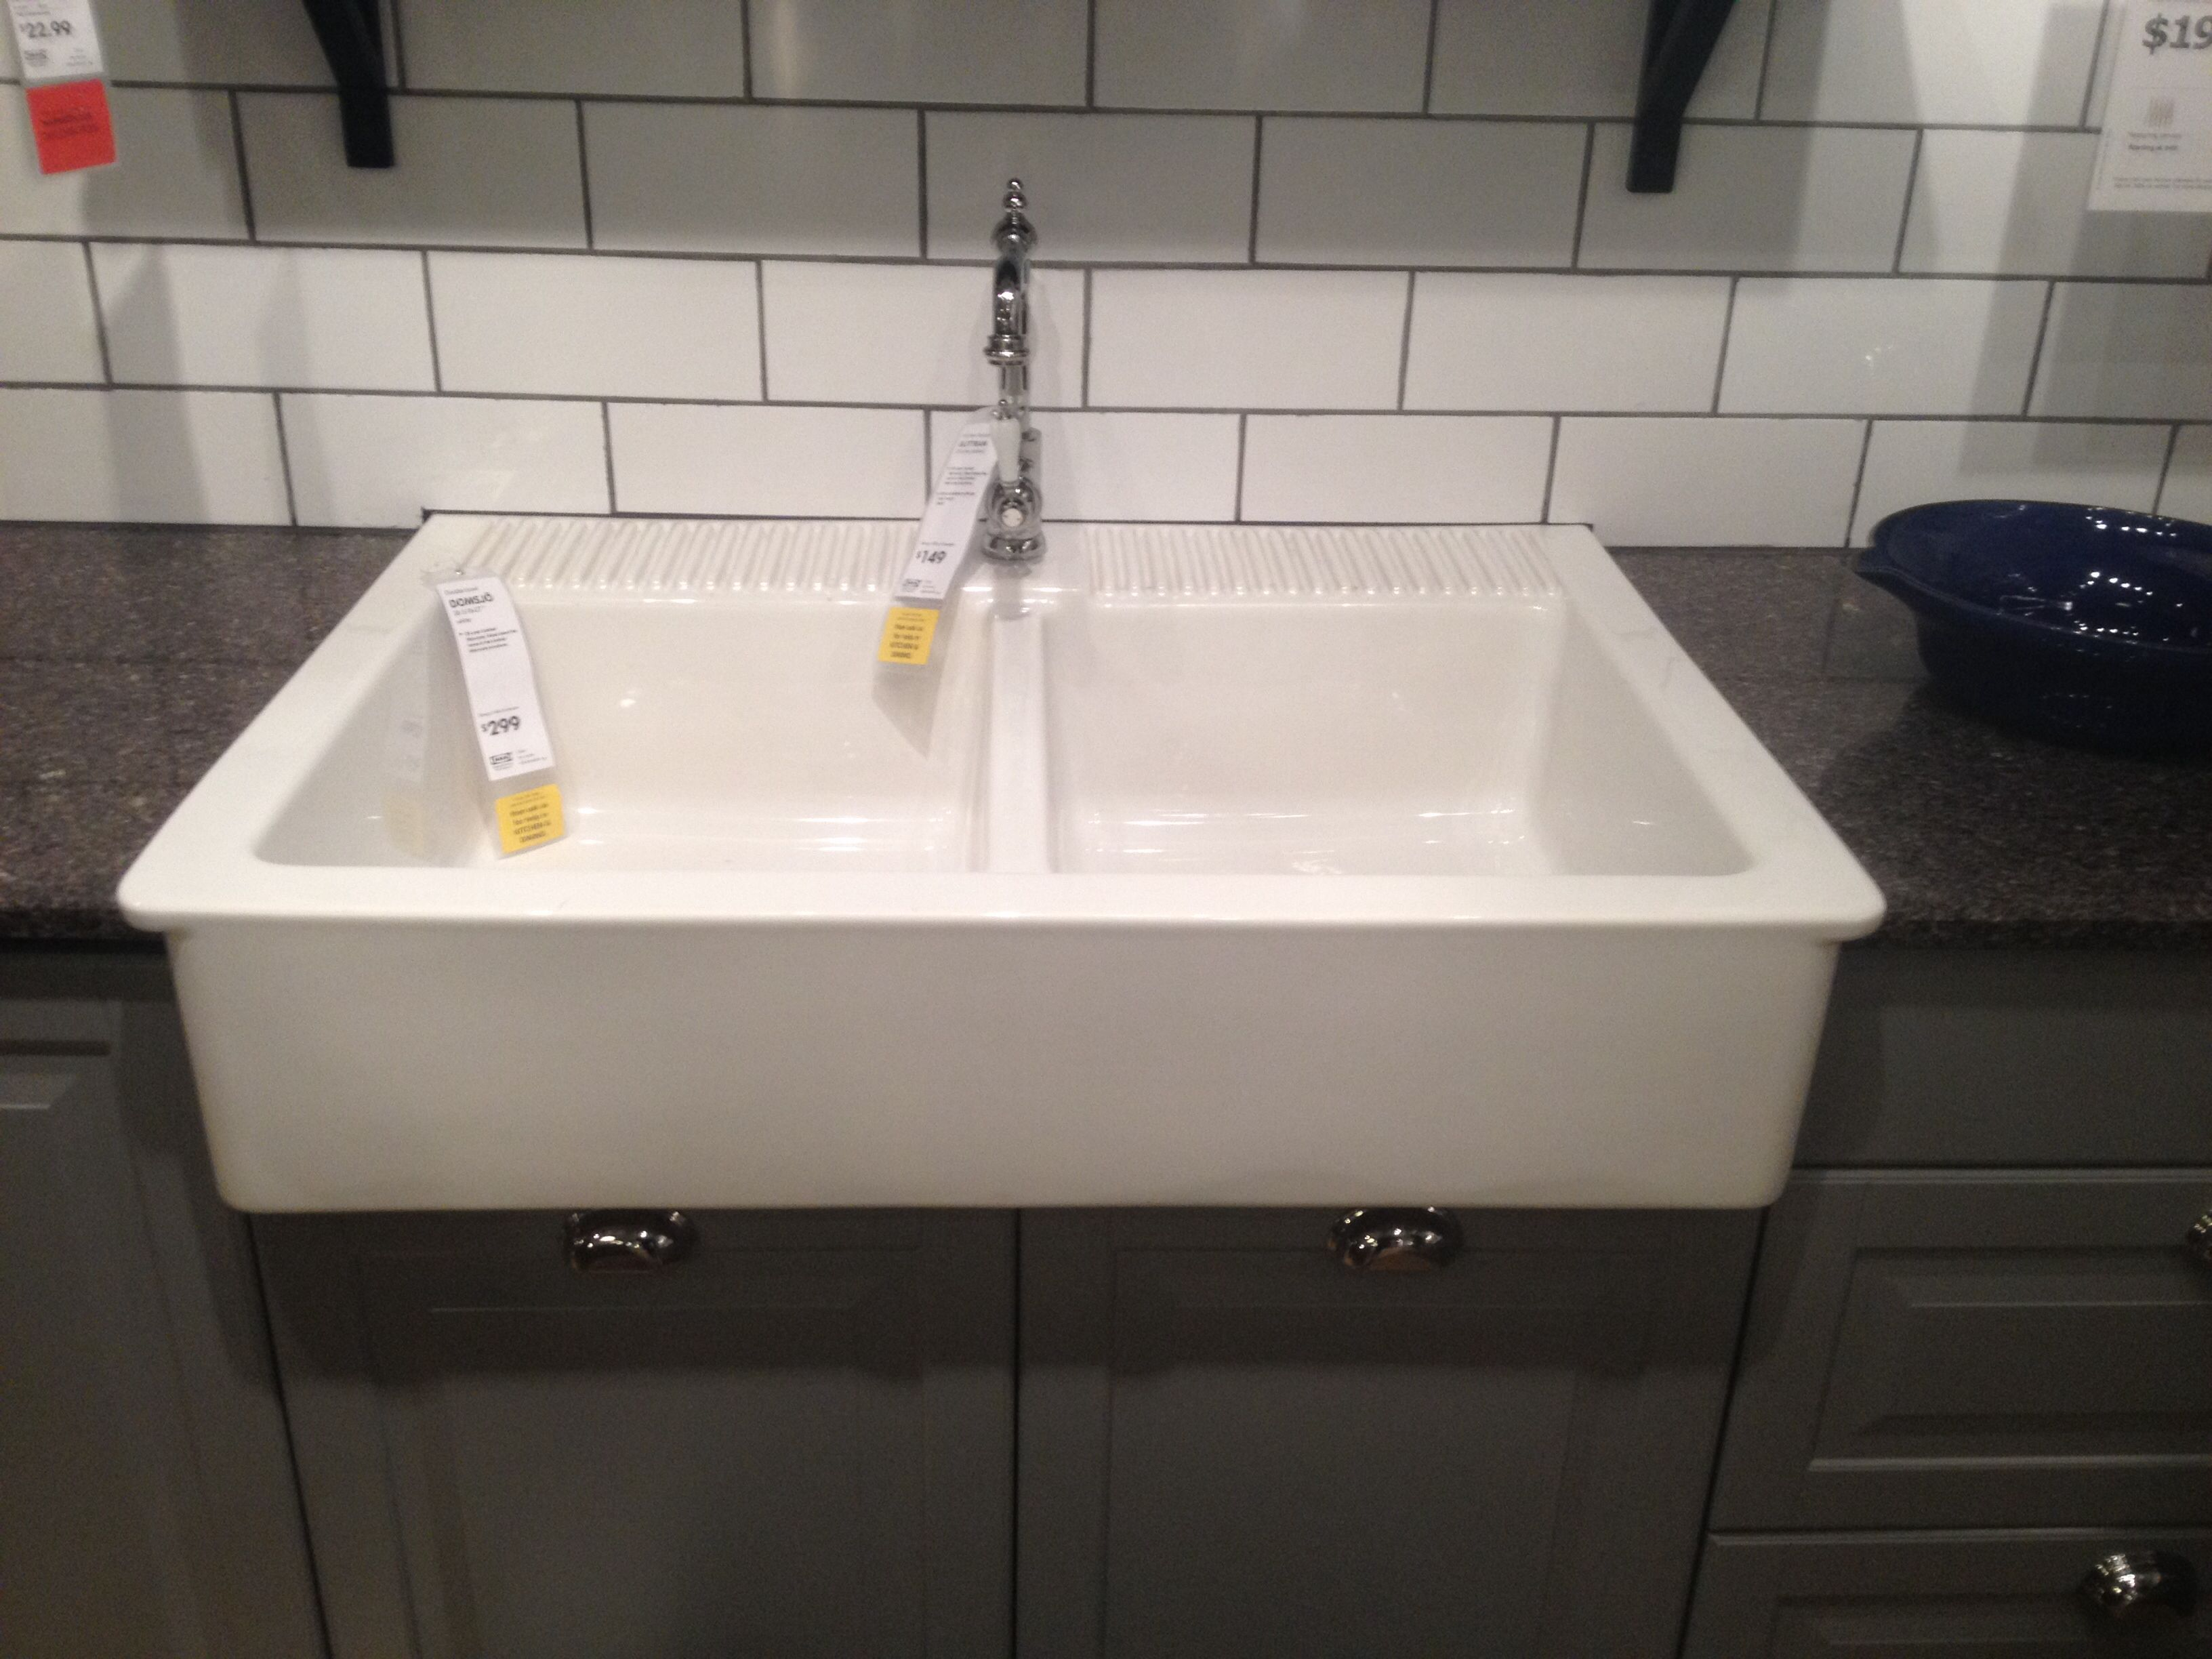 Retrofit ikea farmhouse sink Farmhouse sink ikea